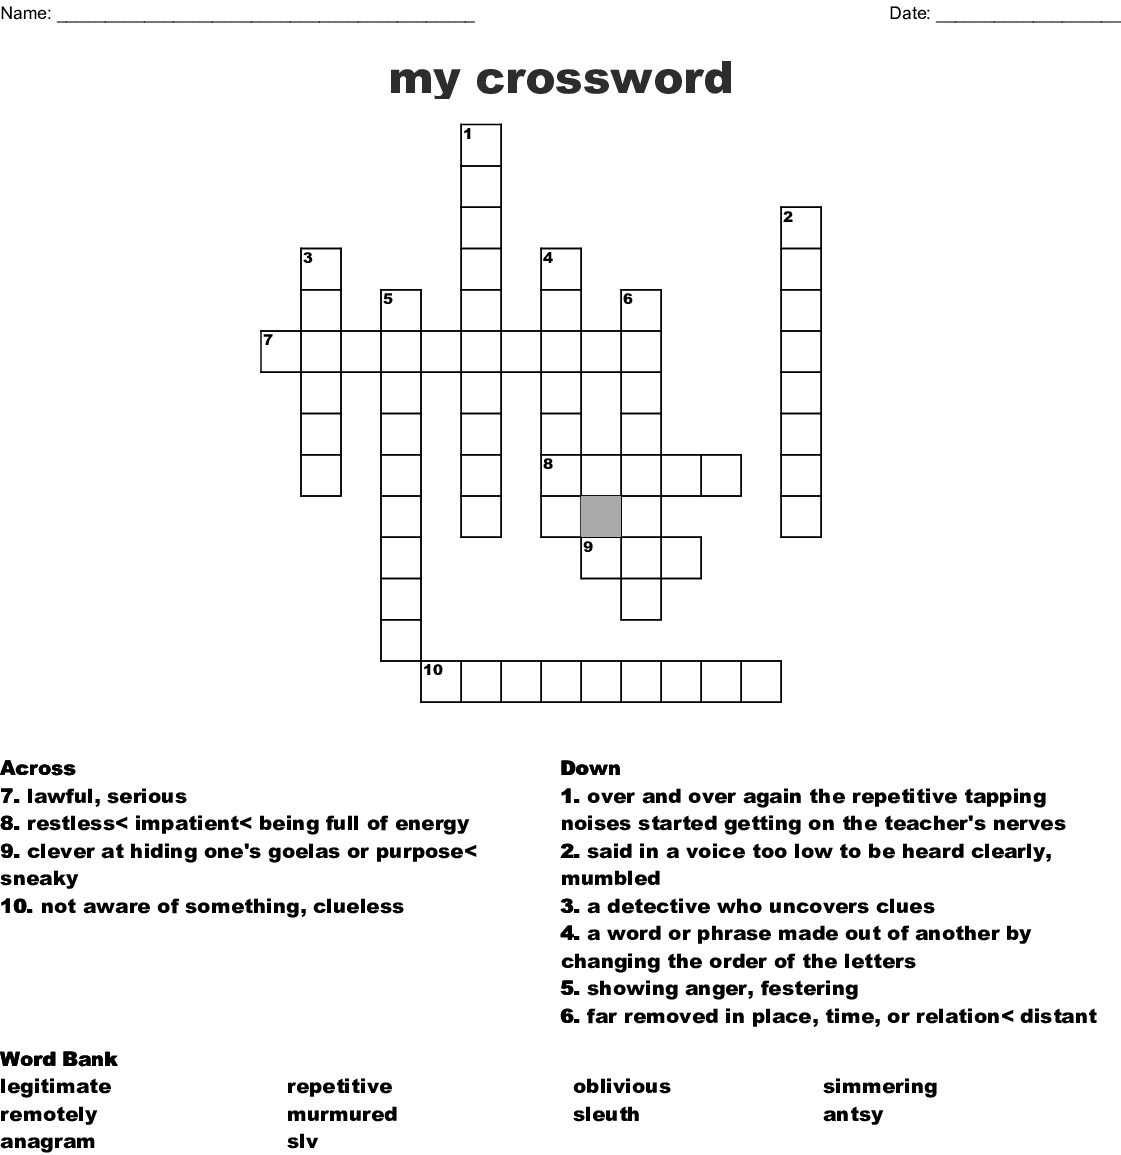 My Crossword Wordmint